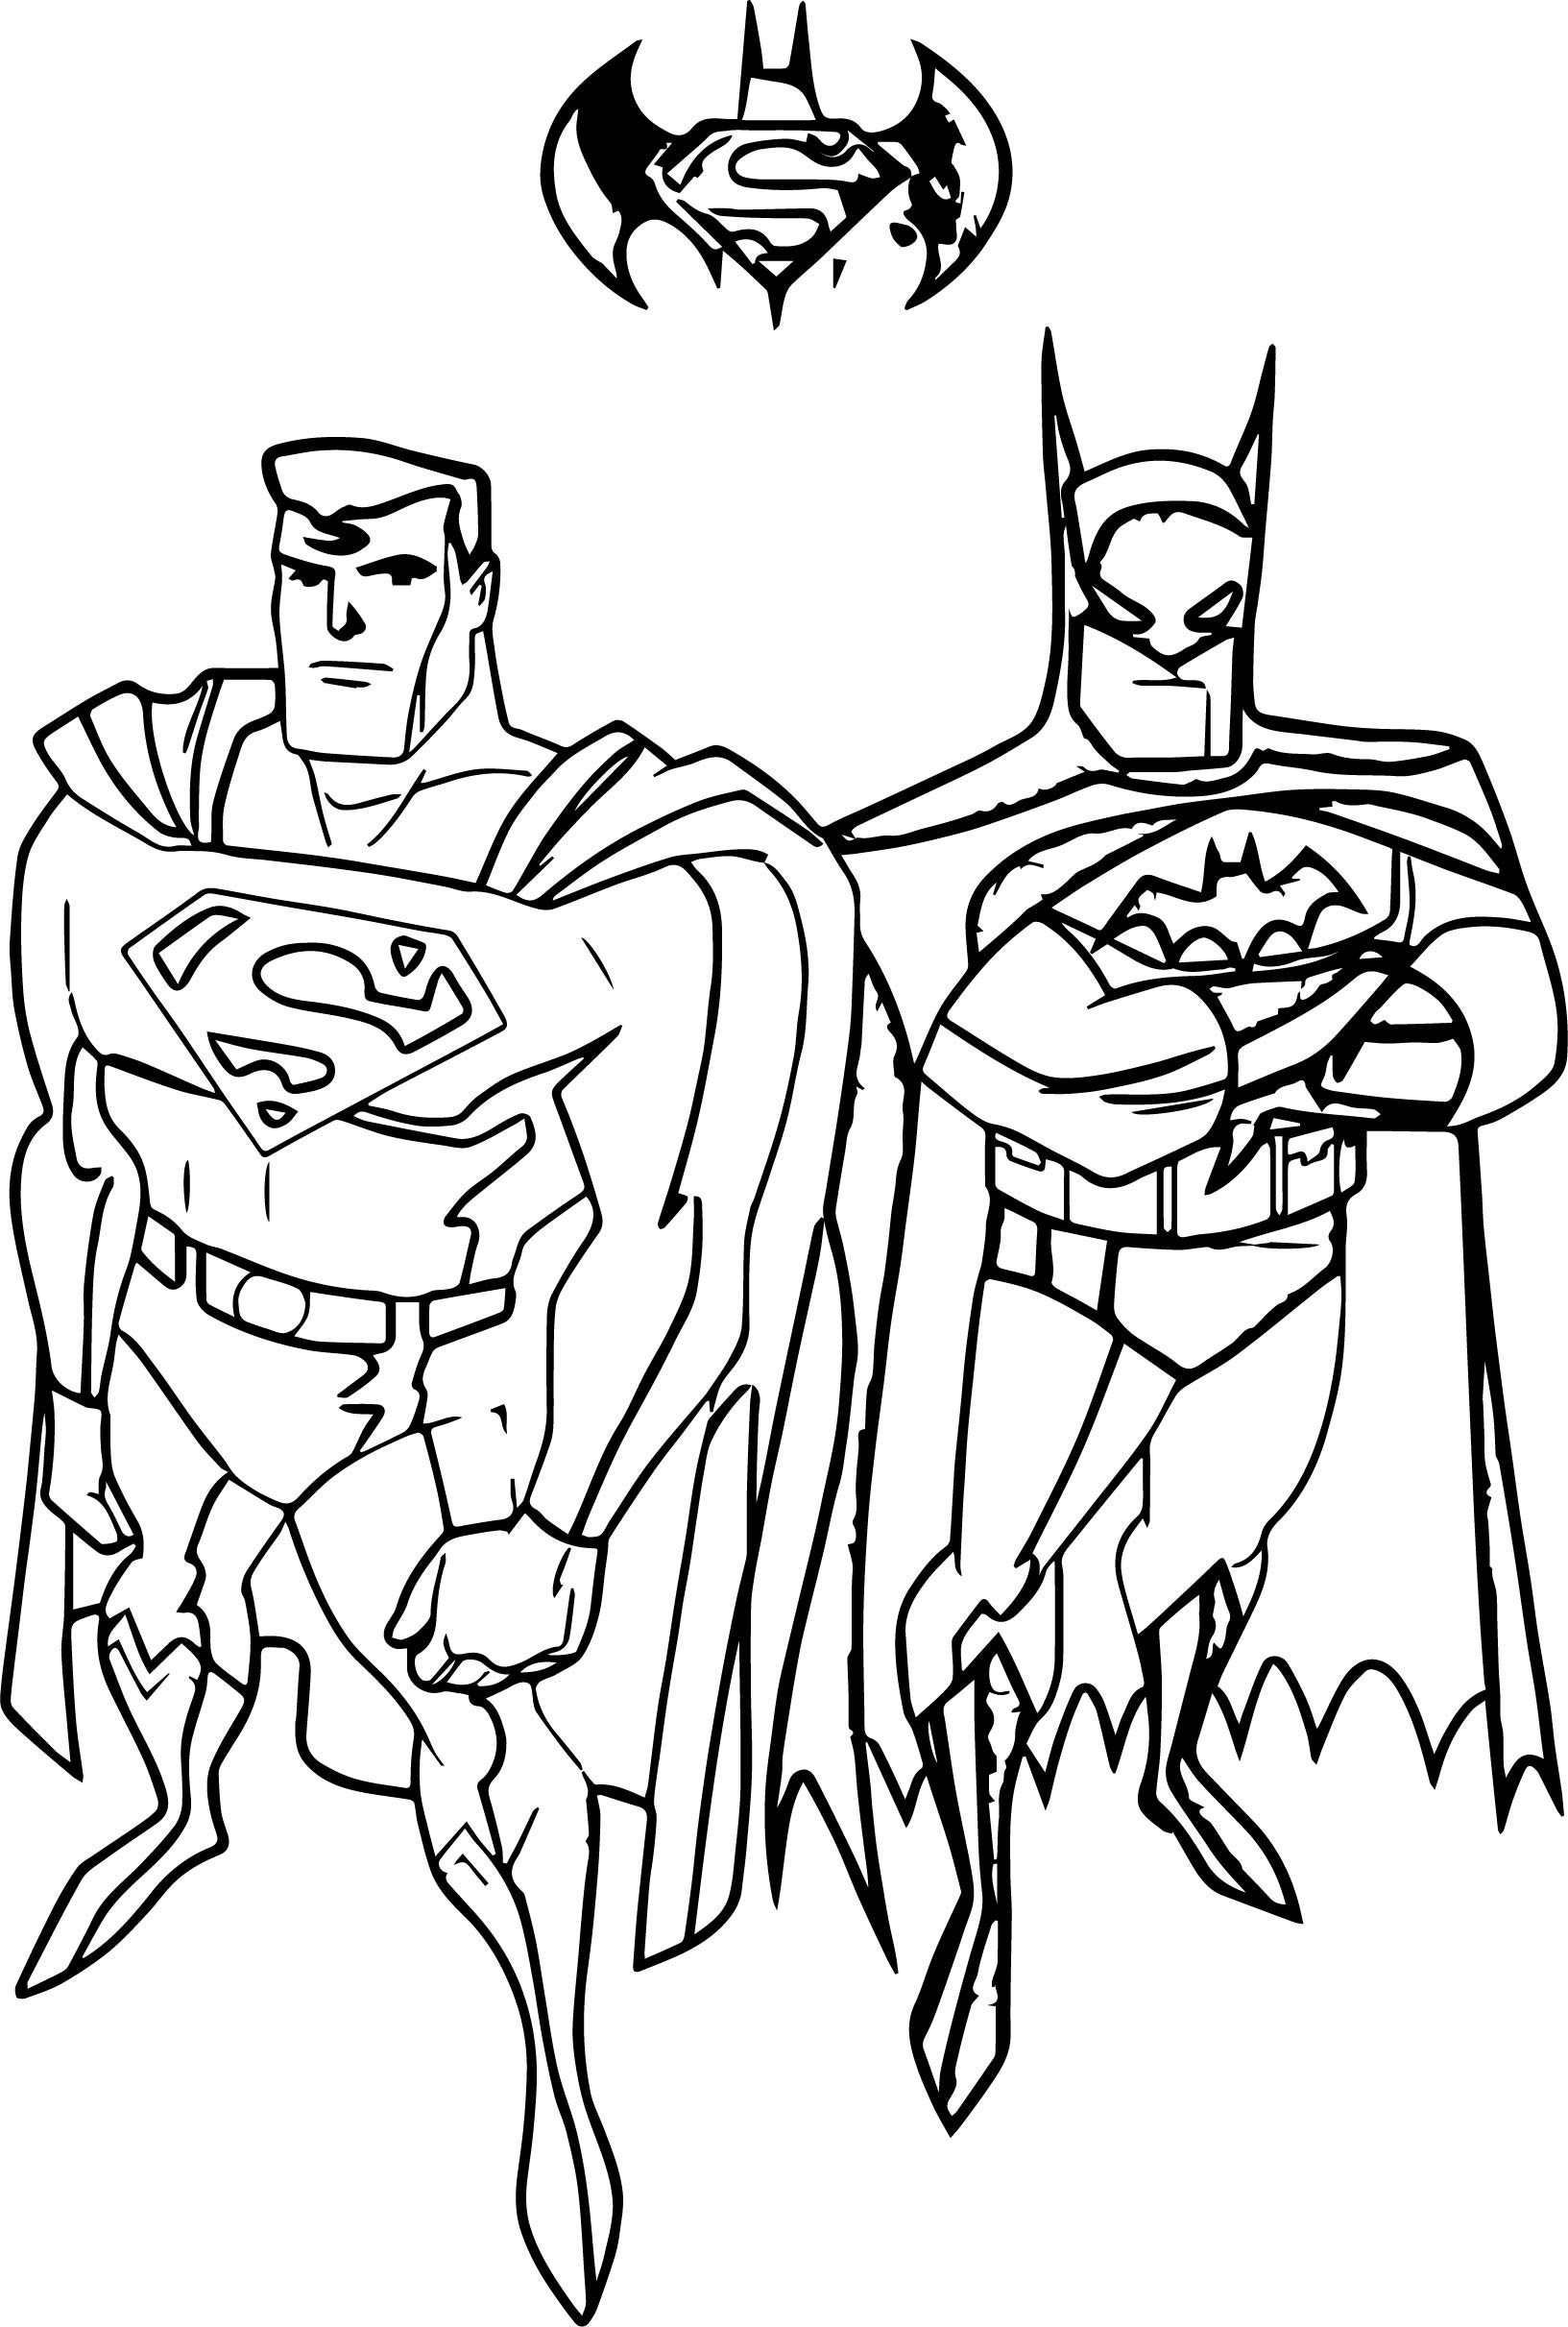 lego superman lego superman coloring pages at getcoloringscom free superman lego